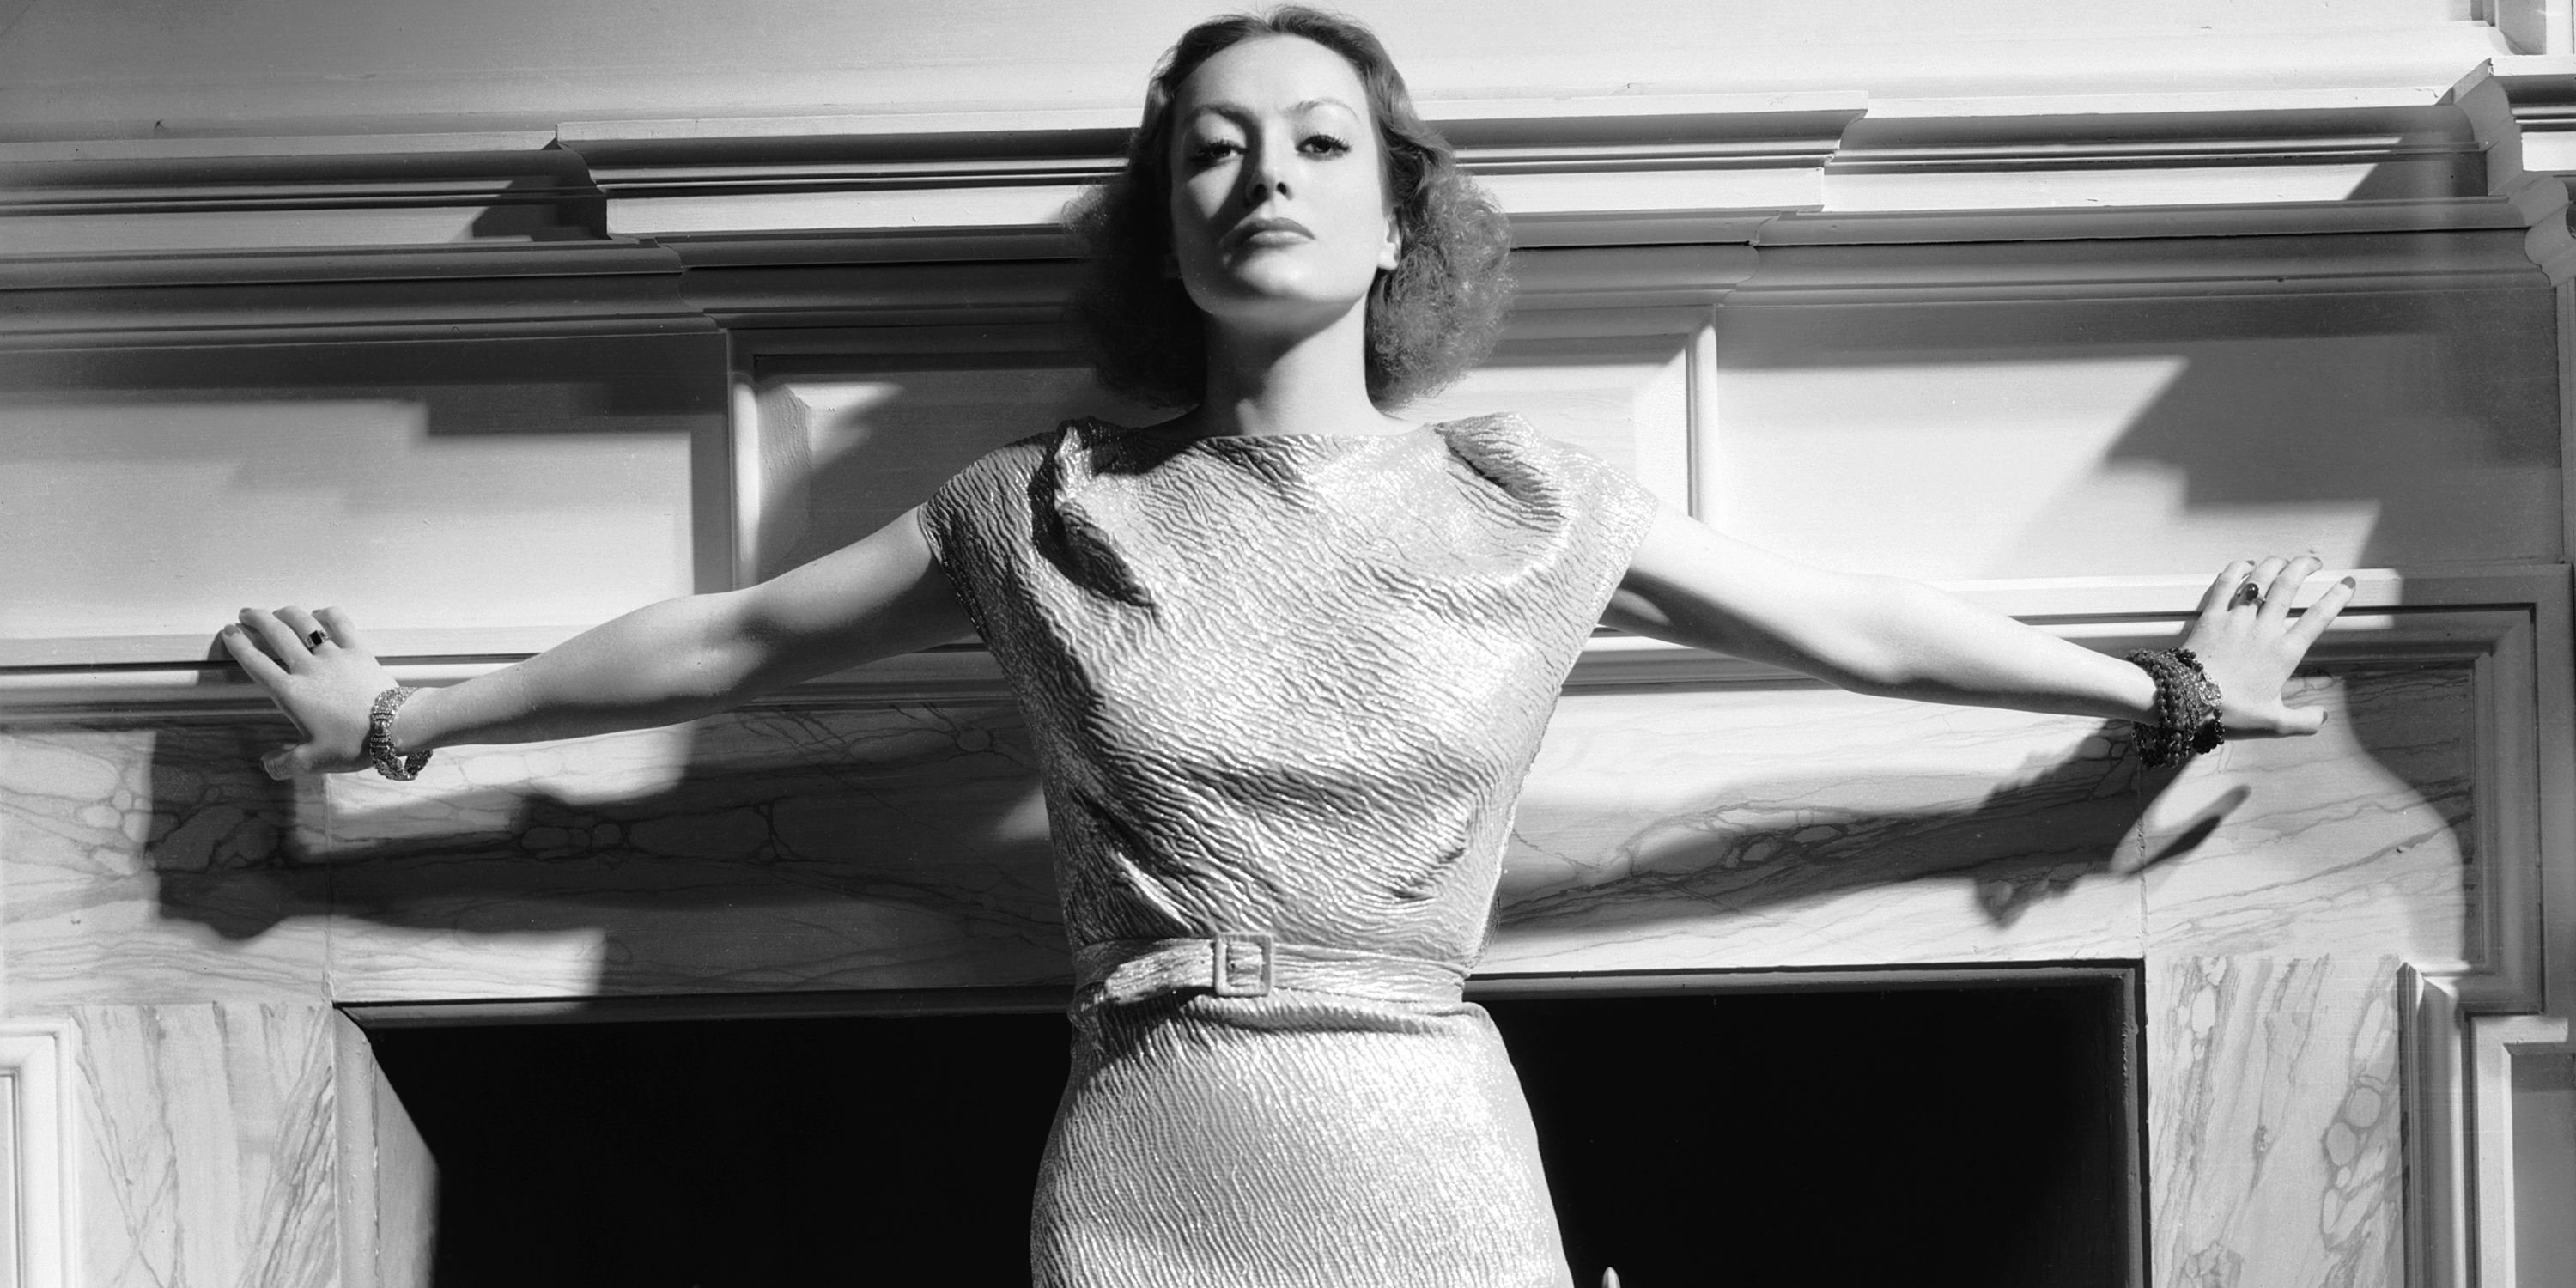 Joan crawford hot videos